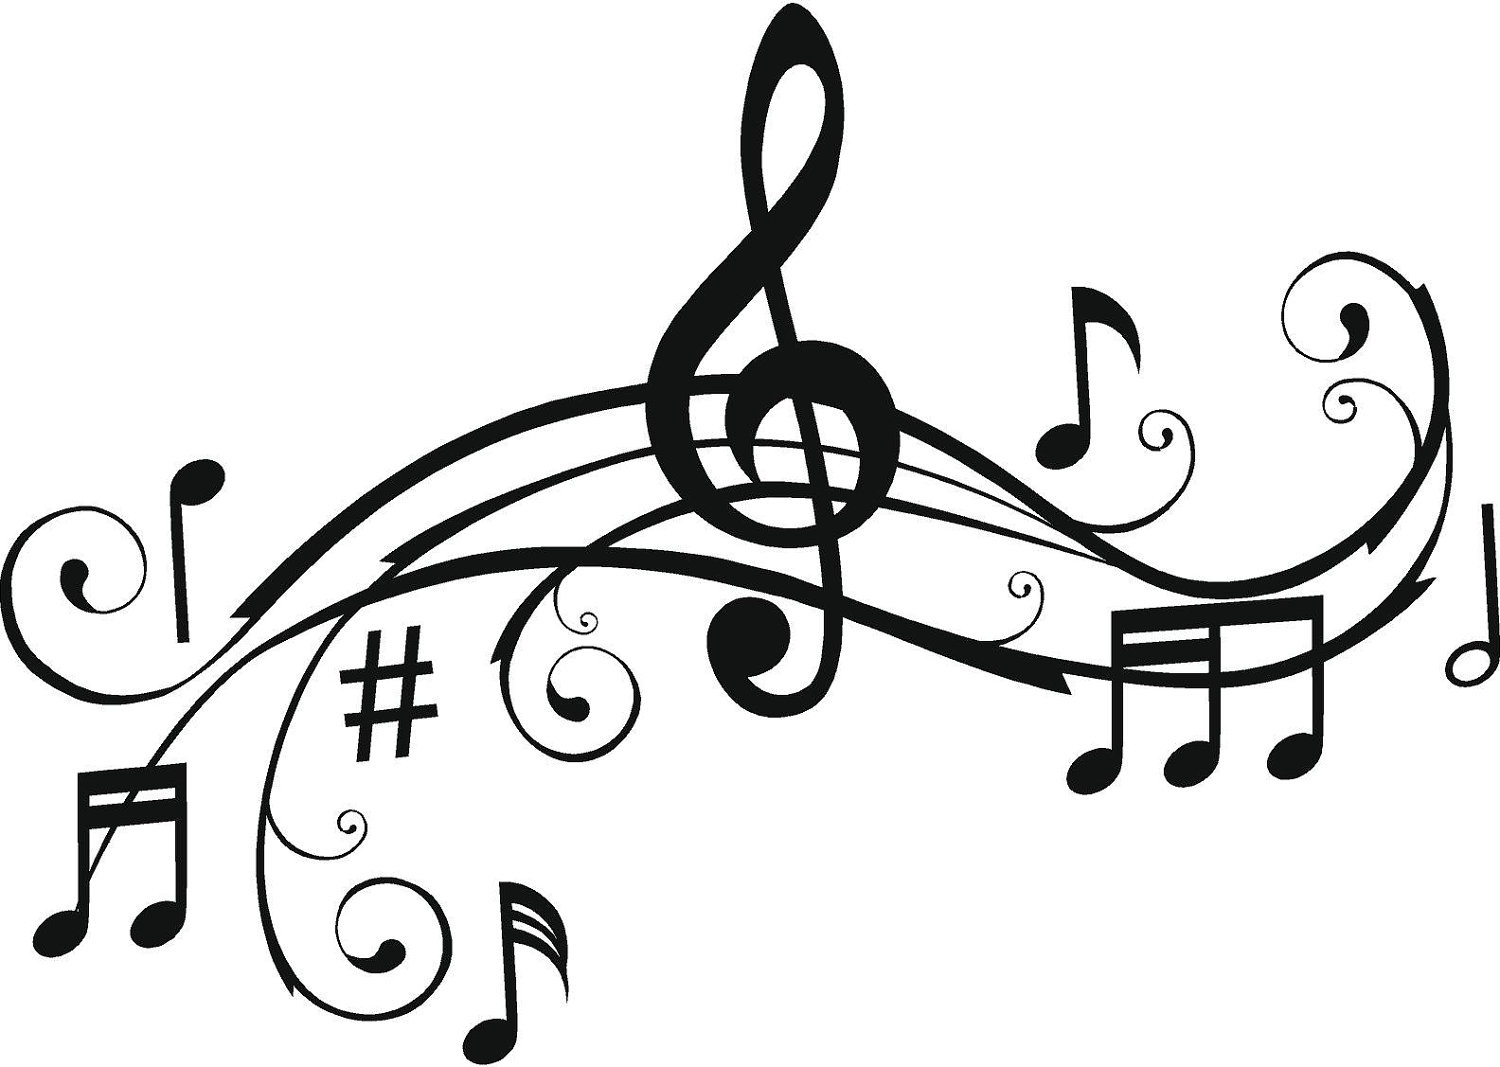 Free Printable Music Note Coloring Pages For Kids - Free Printable Pictures Of Music Notes